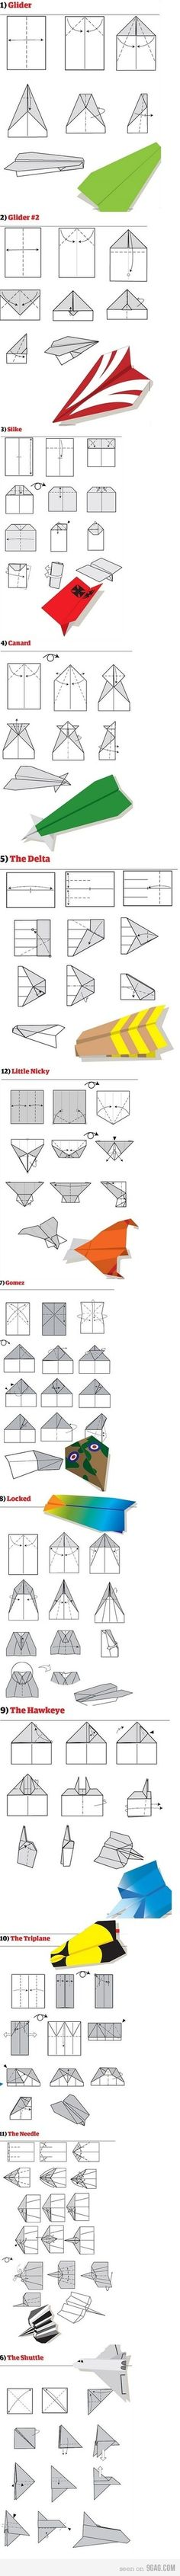 Just build them.. ;) paper airplan, idea, craft, airplanes, papers, fun, origami, paper planes, kid